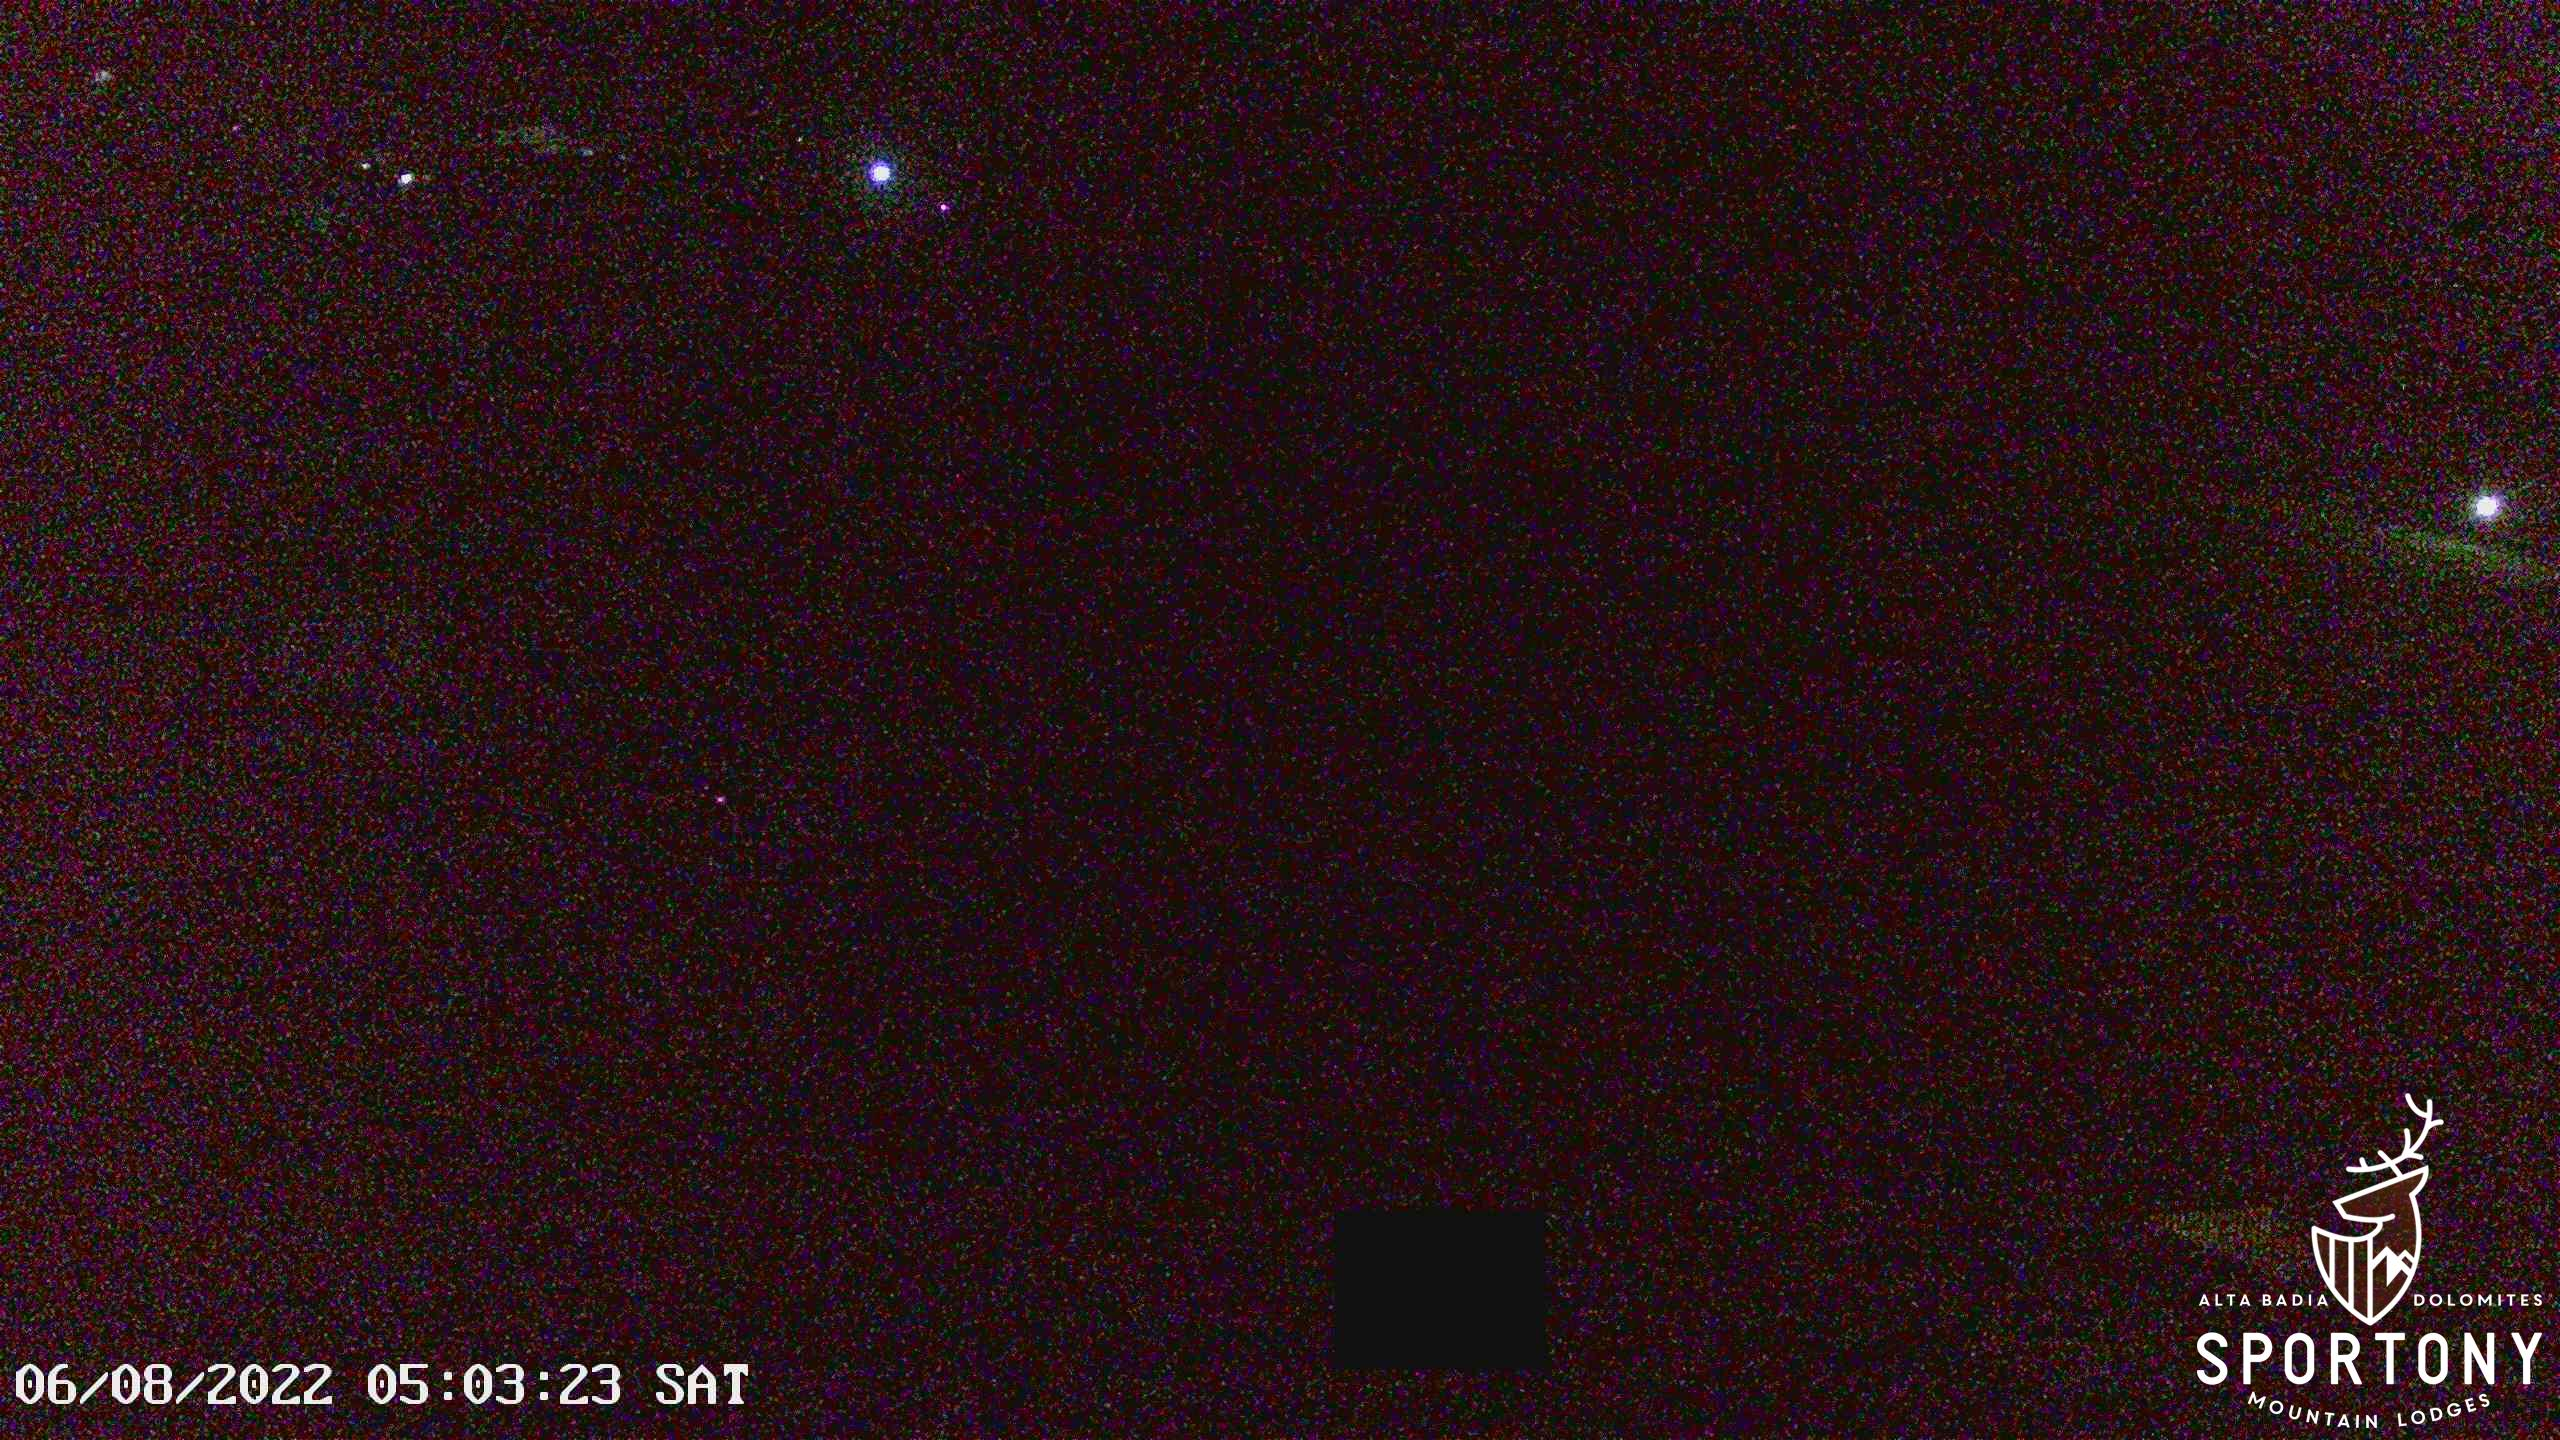 Webcam Chalets Sportony Lodge ski in ski out piste Gardenaccia Dolomiti Superski La Villa Alta Badia